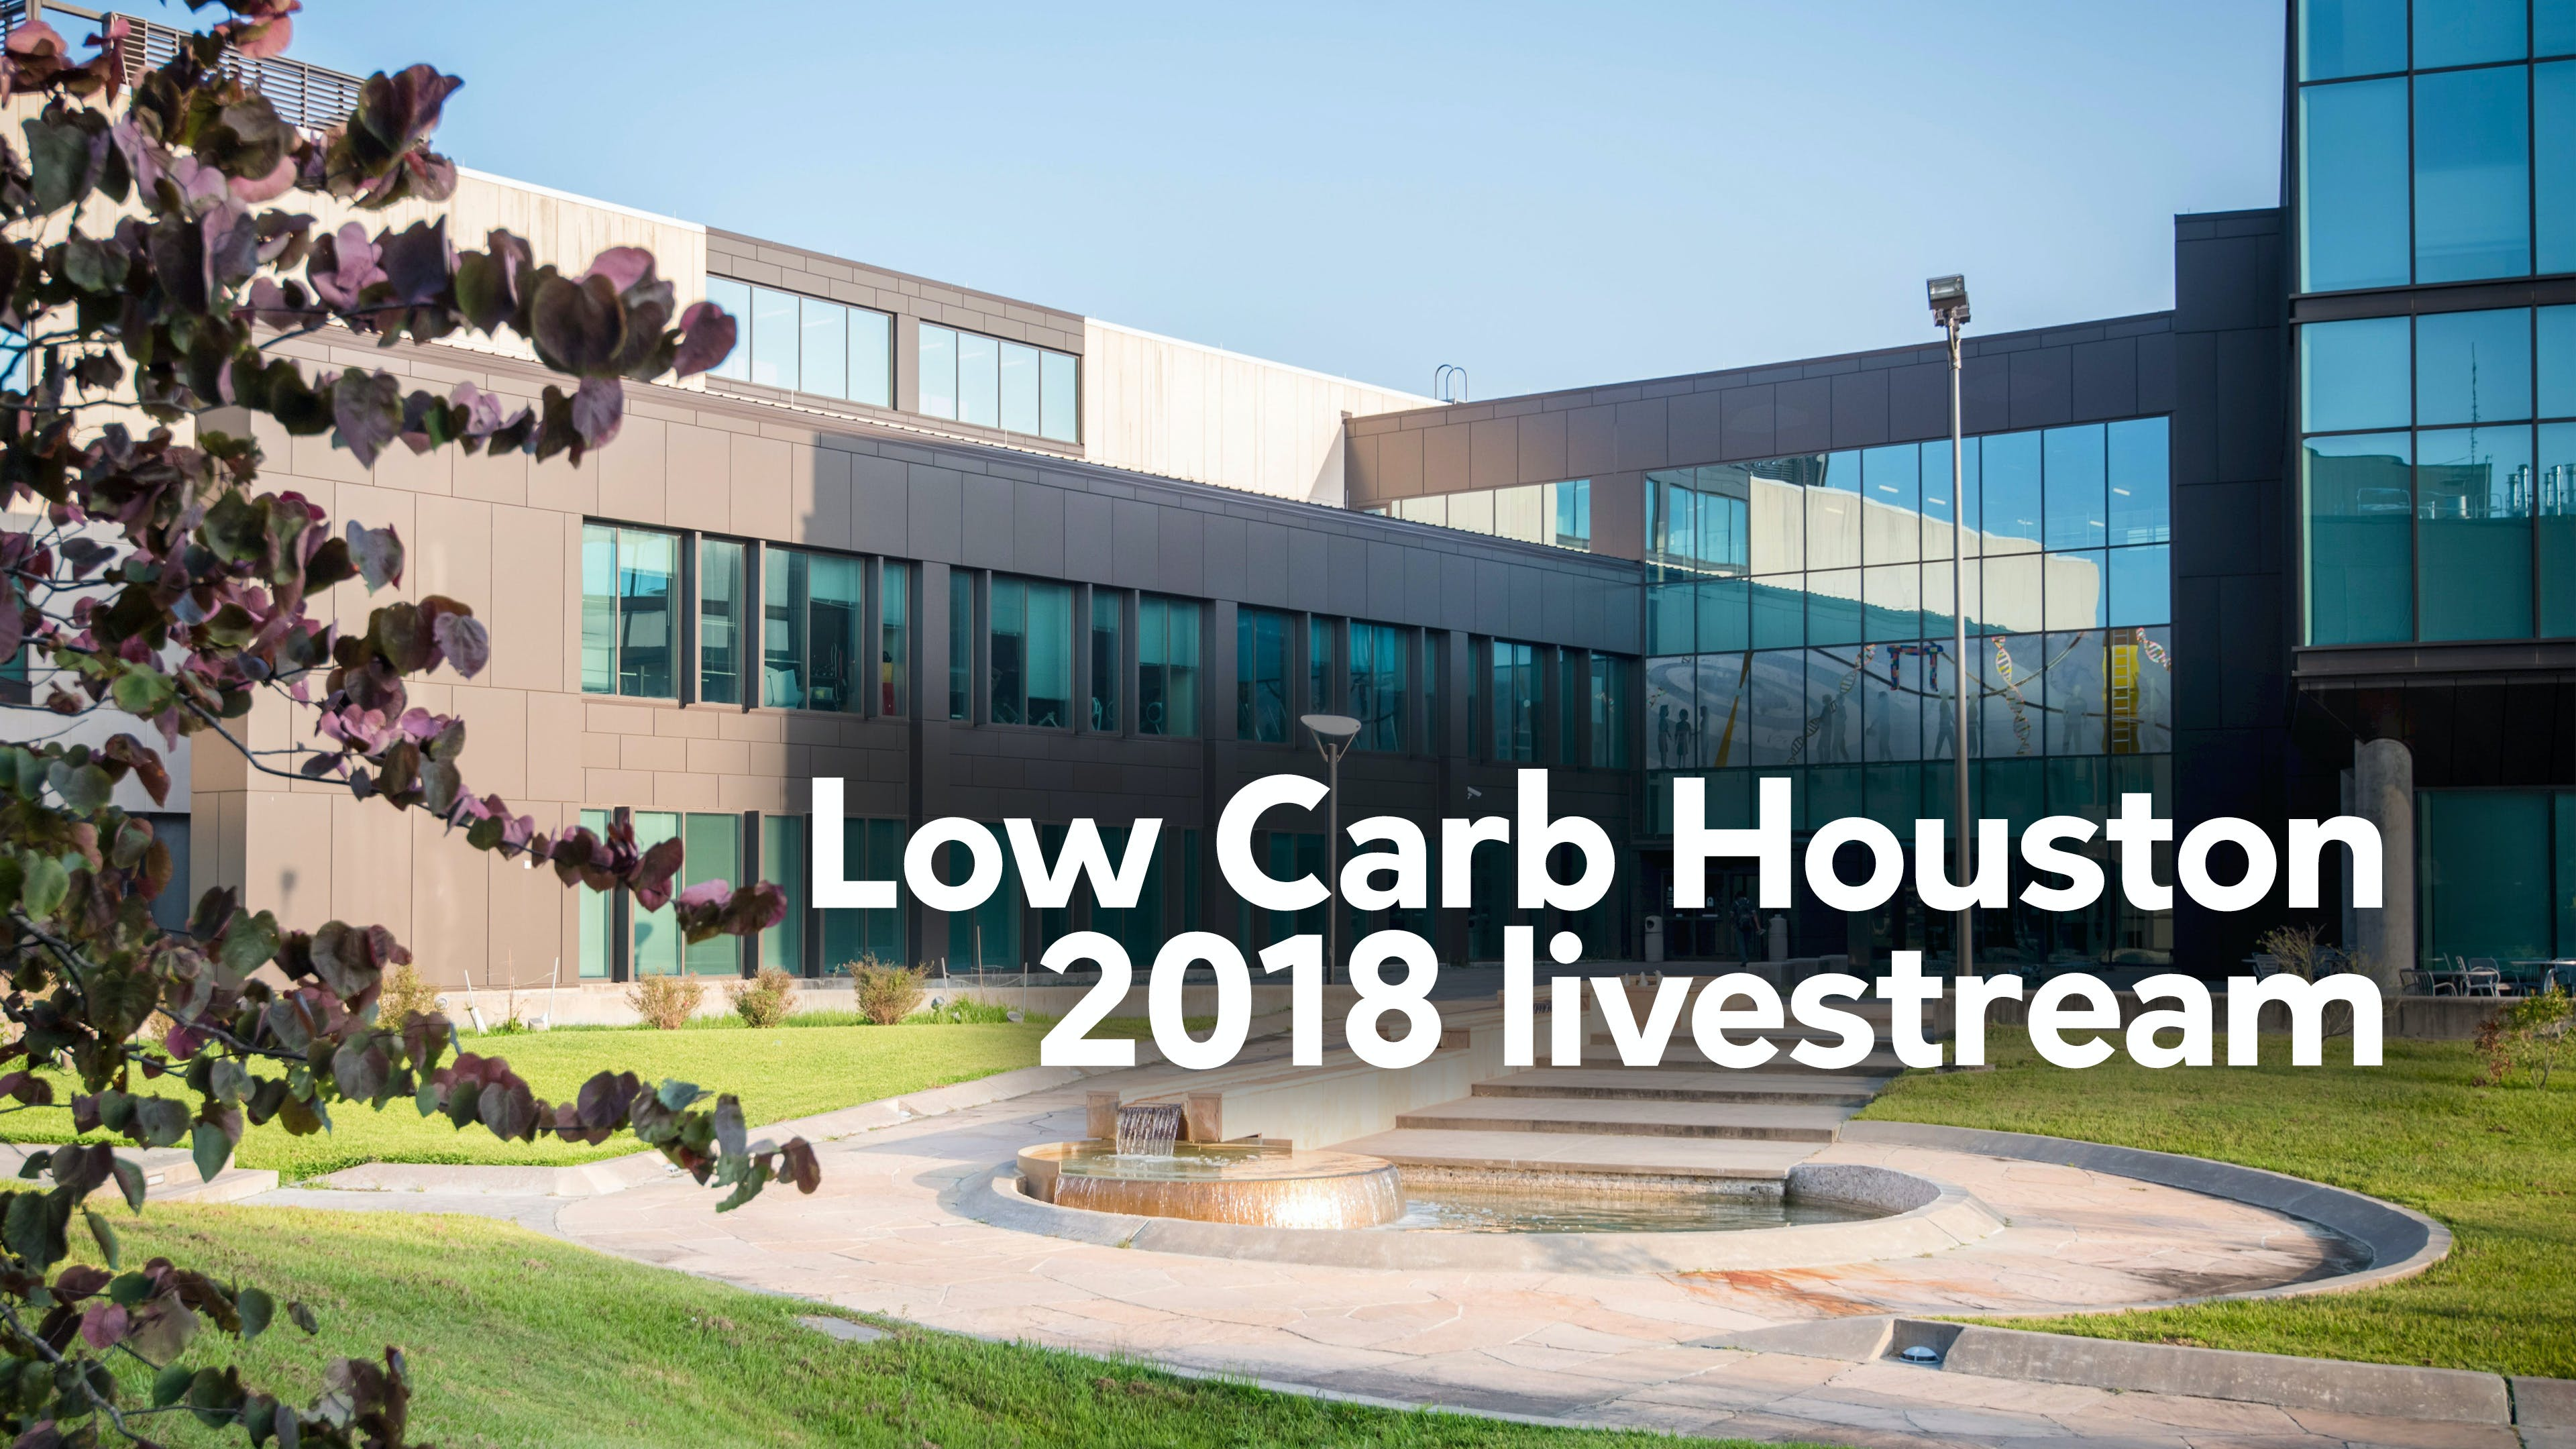 Low Carb Houston 2018 livestream